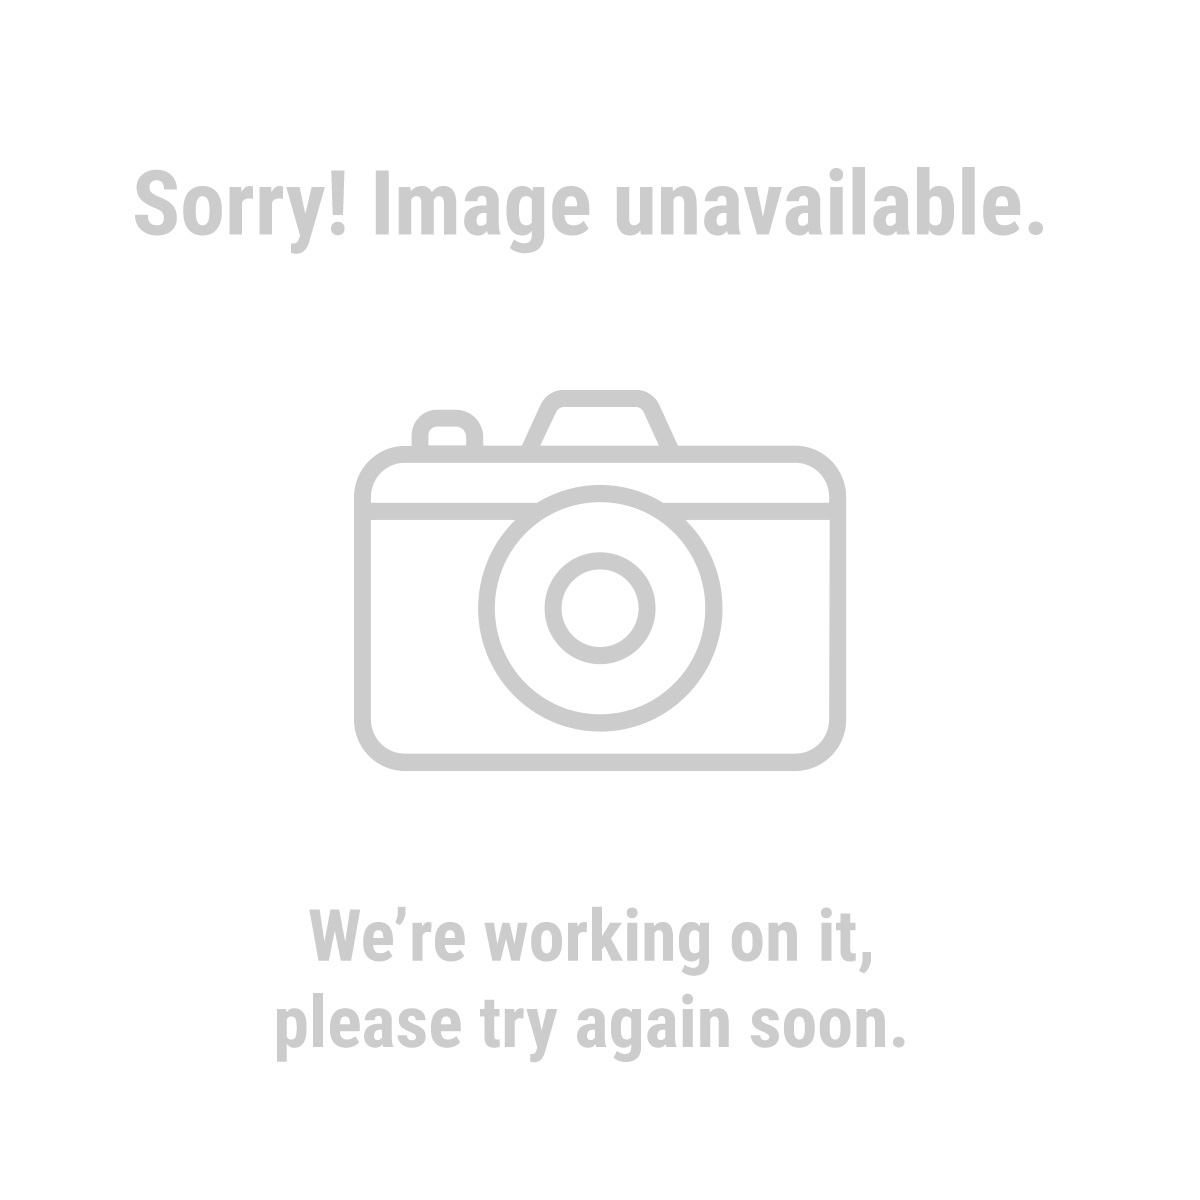 Pittsburgh 69353 5 Piece Pliers Set